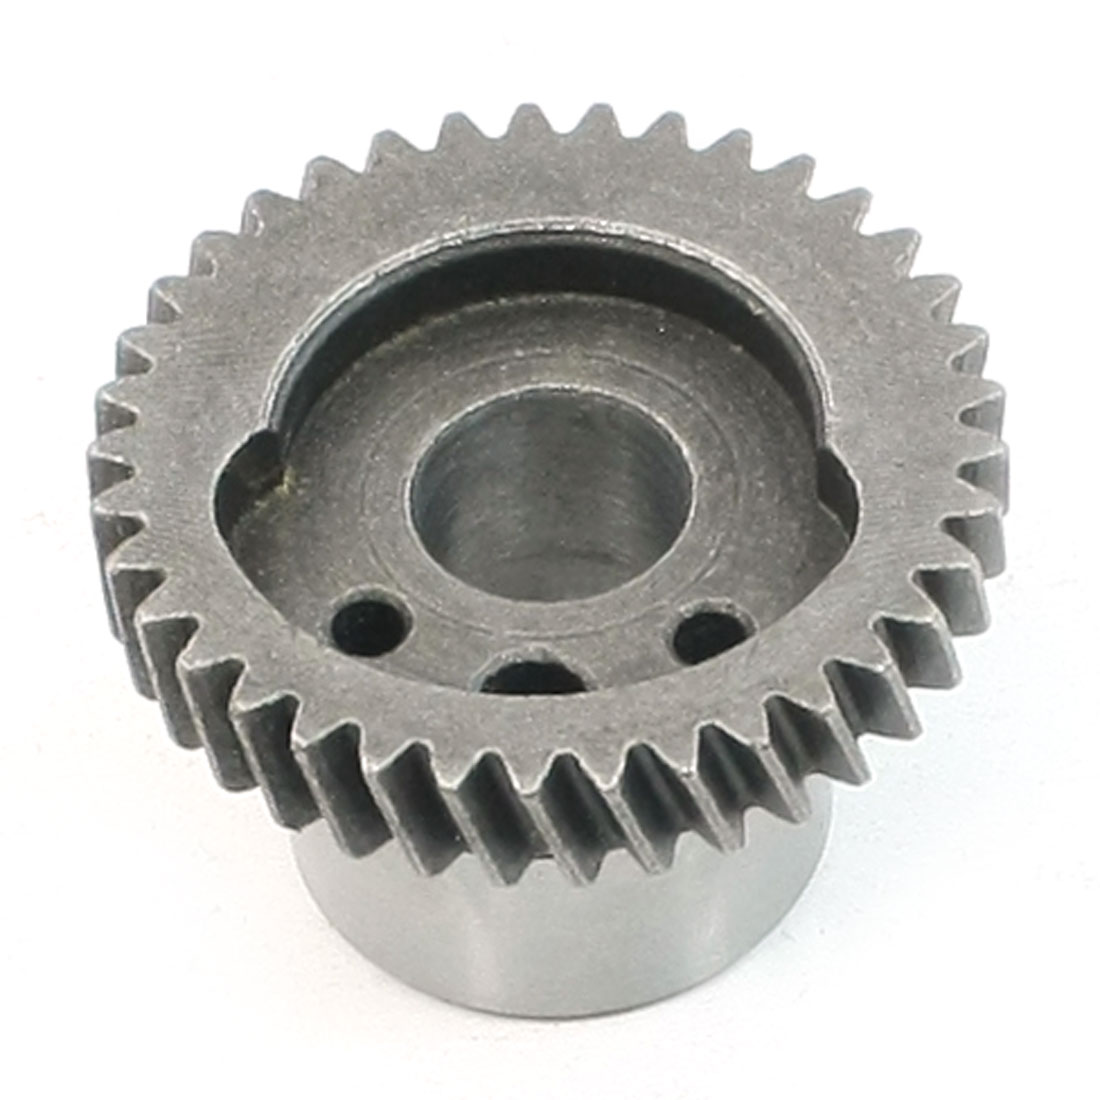 Power Tool Spare Part Helical Gear Wheel for Bosch 1581 Jigsaw